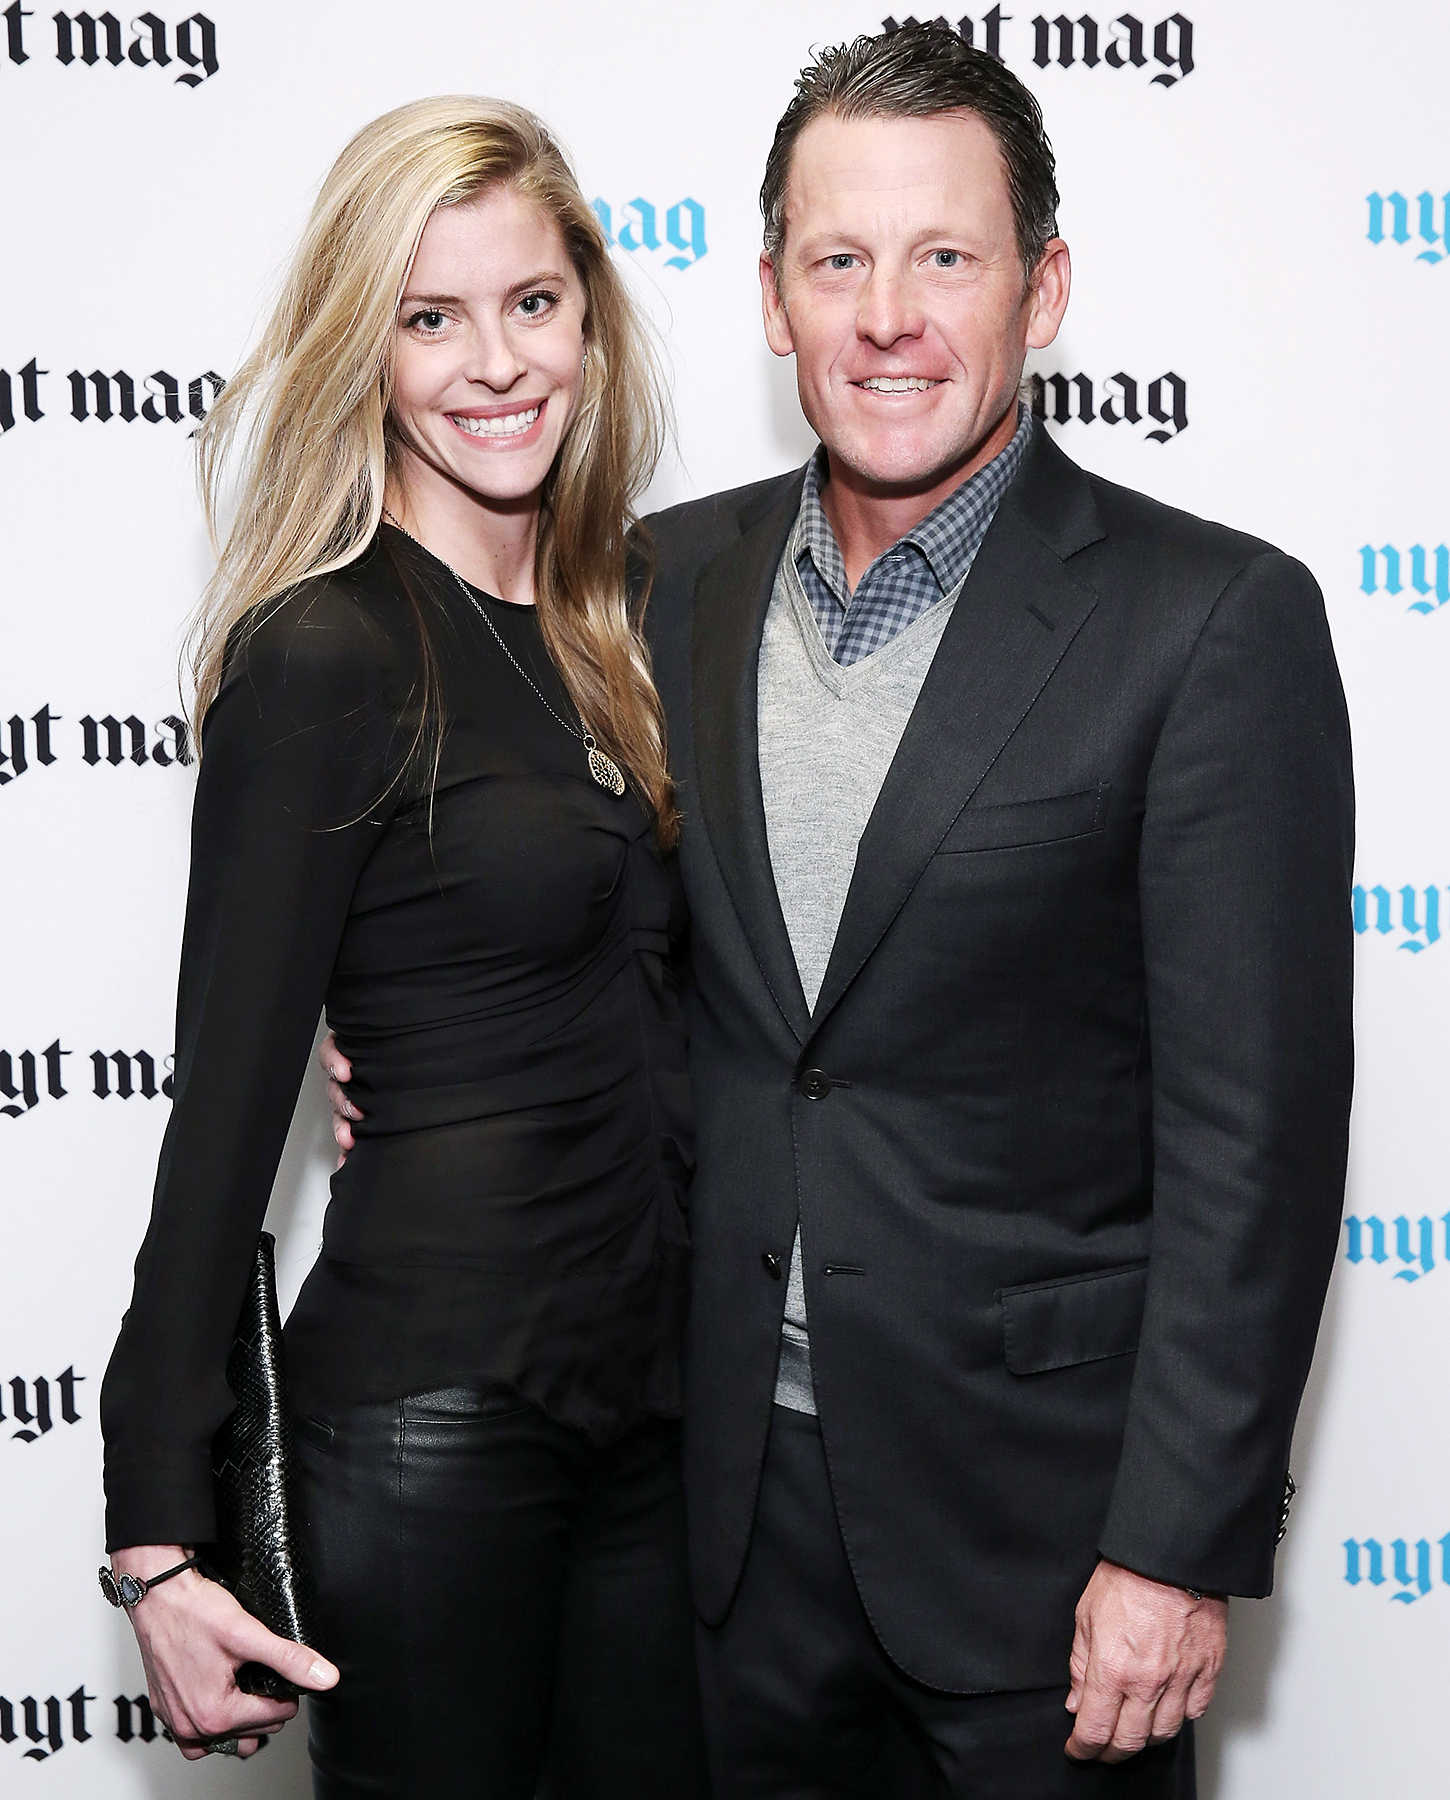 Is lance armstrong married to anna hansen